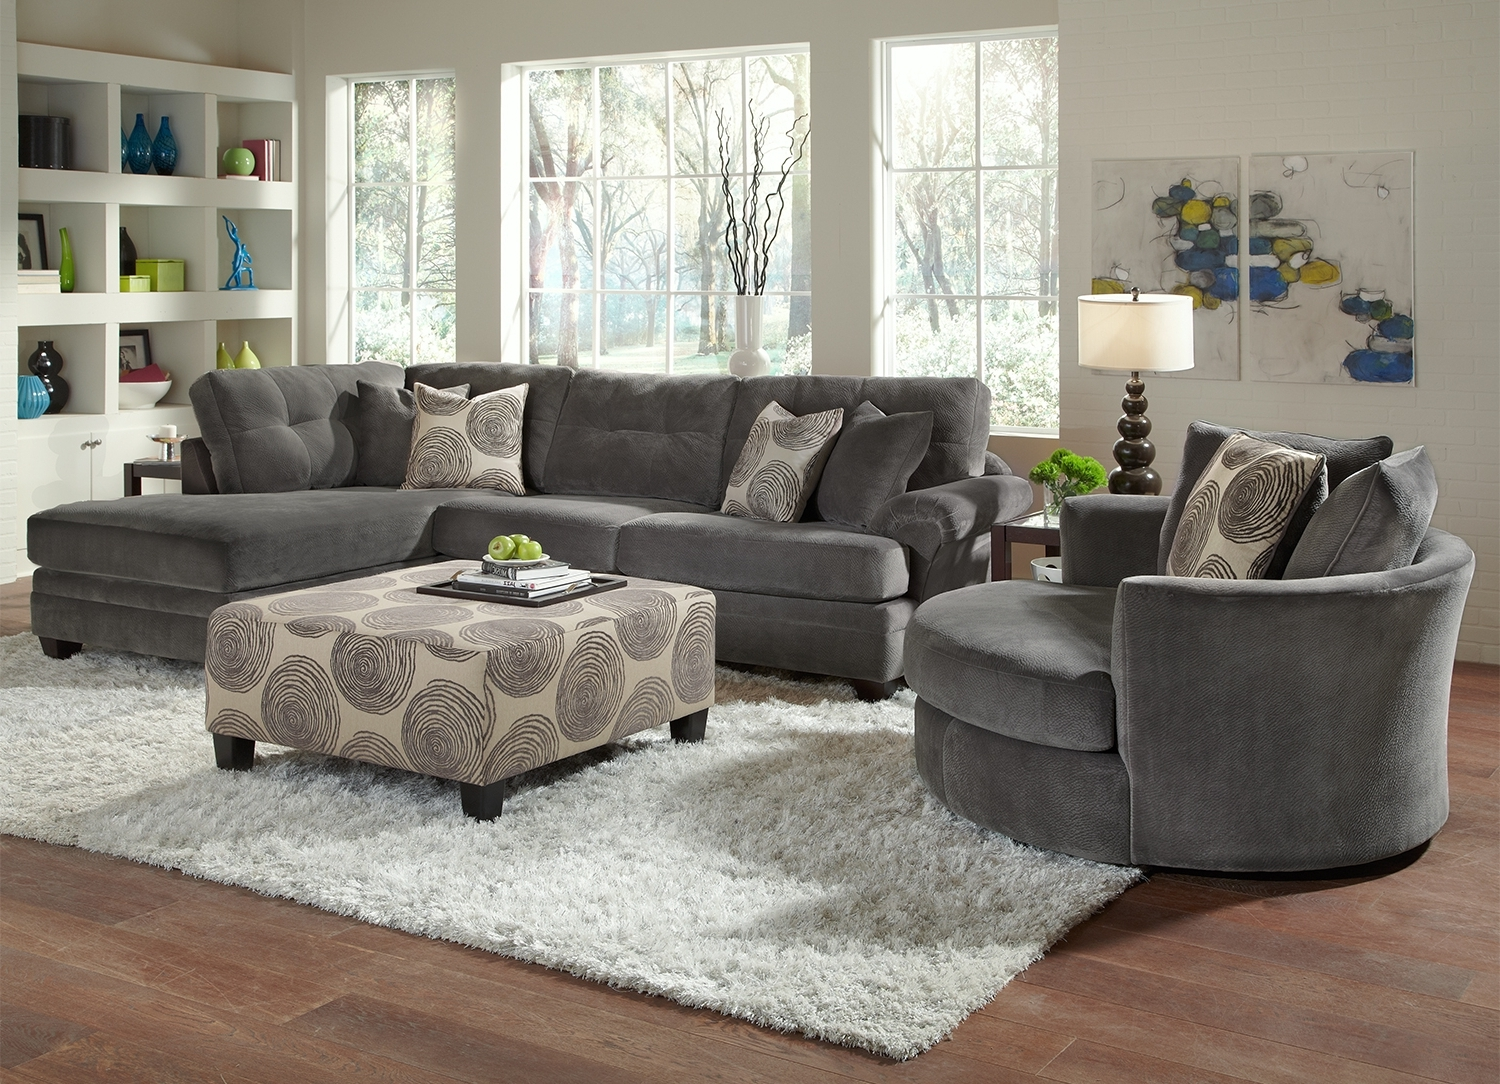 Tips to buy swivel chairs for living room for Living room stools furniture